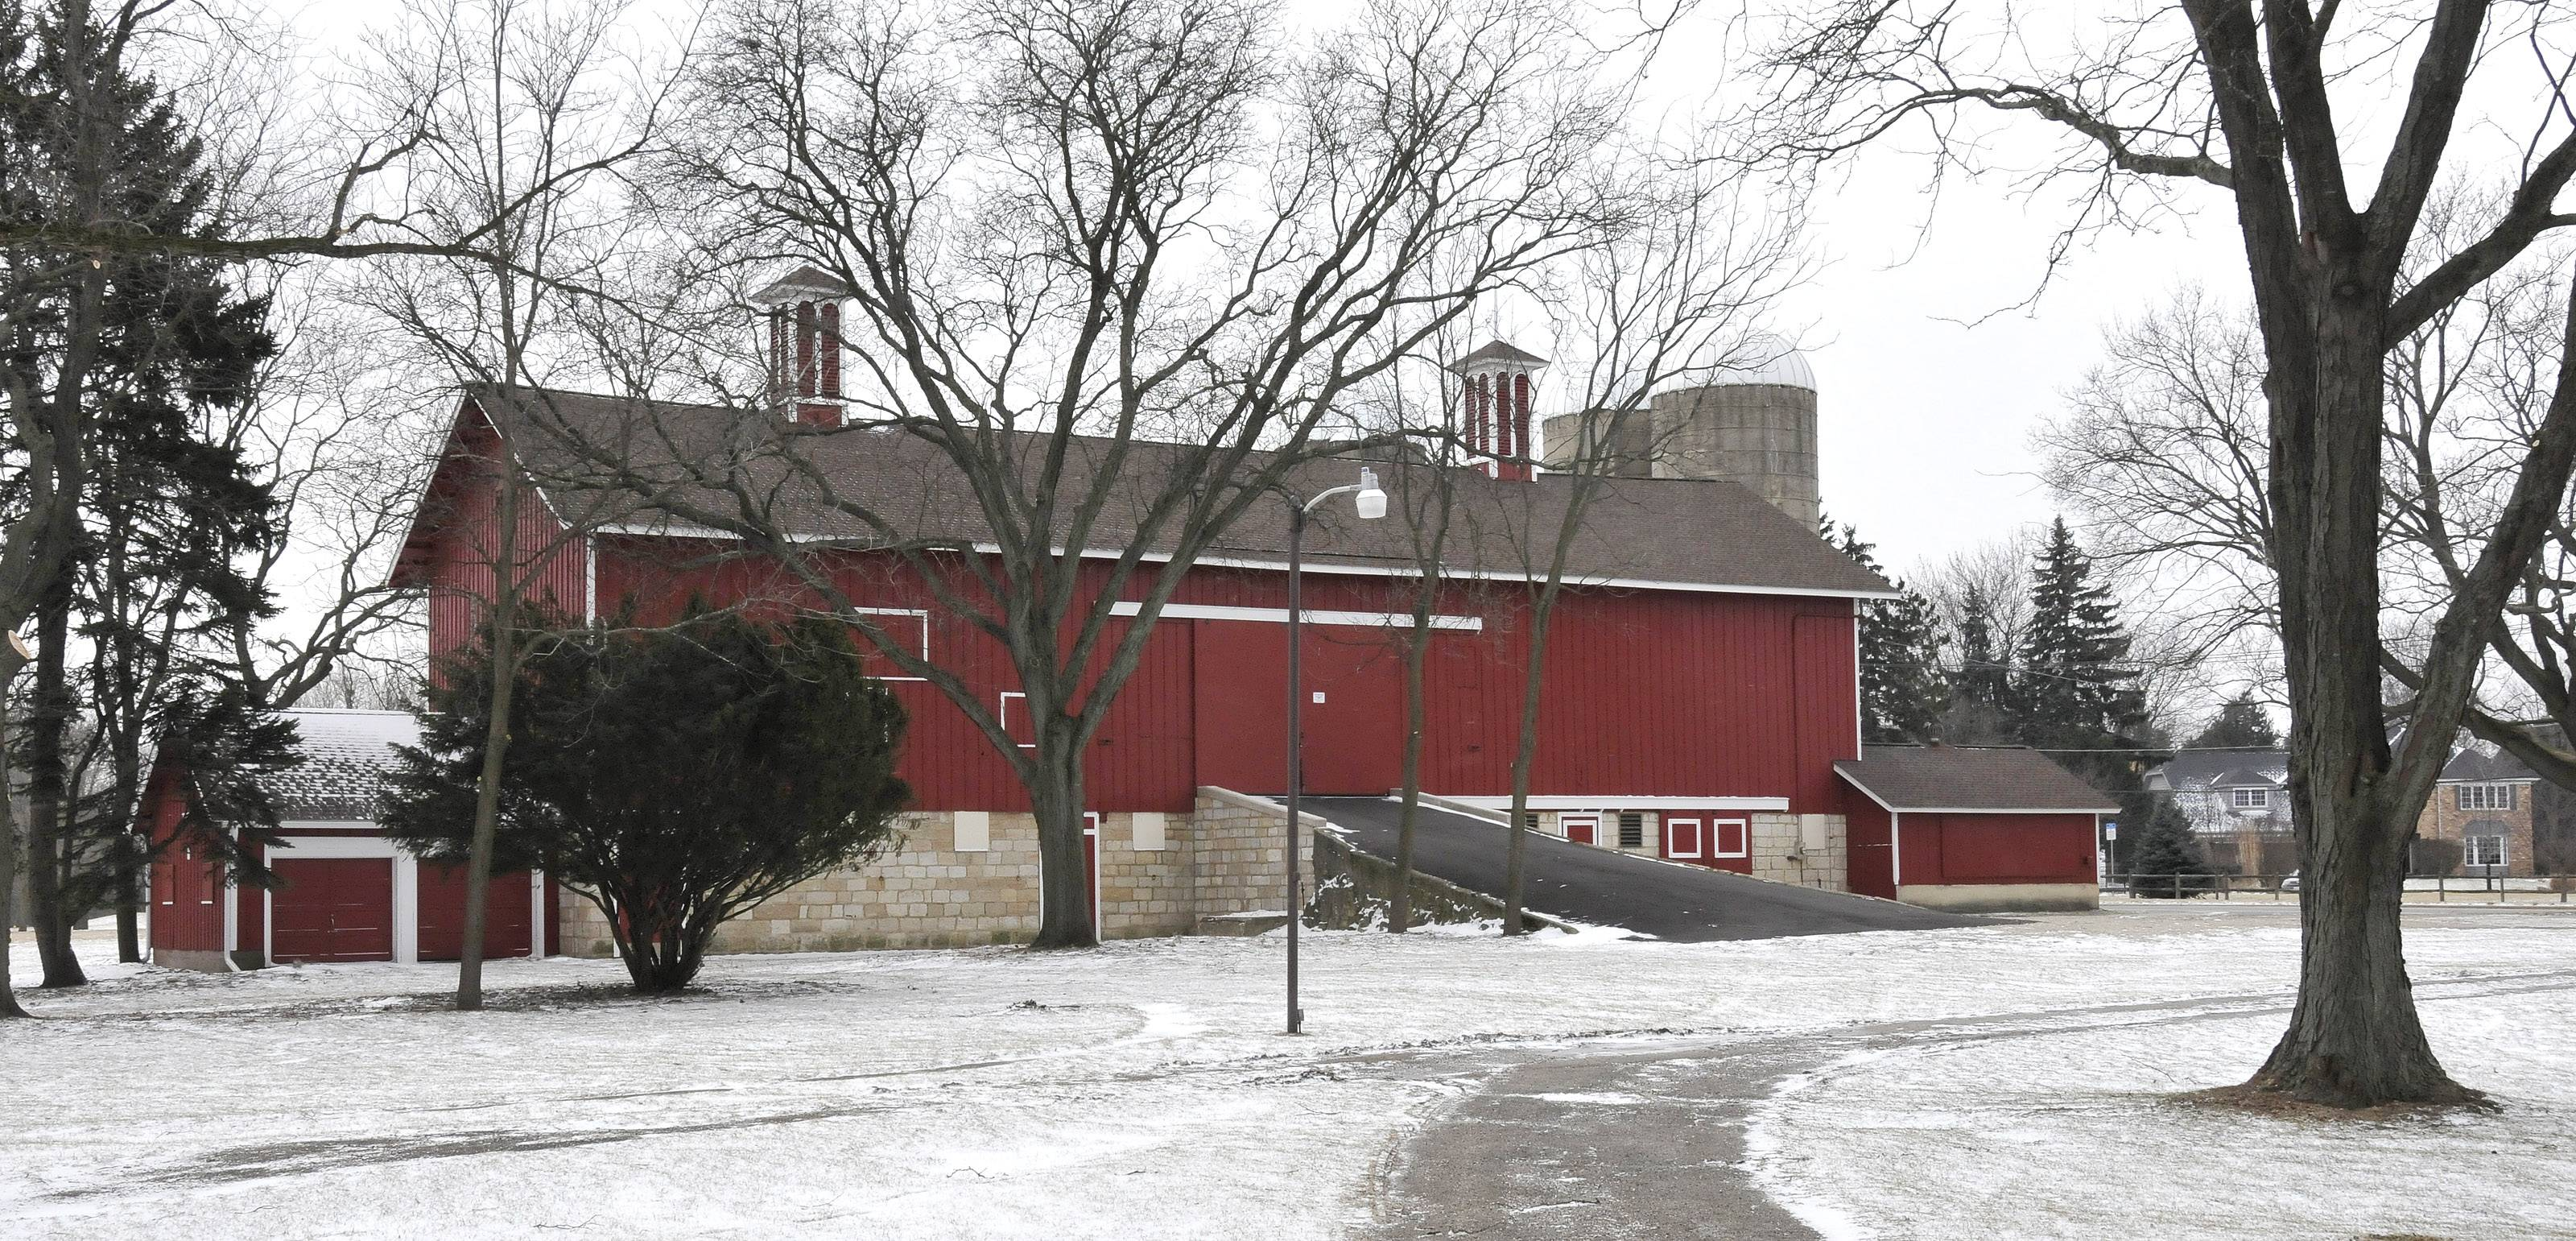 The candidates for the District 5 seat on the DuPage County Forest Preserve Commission both say they played key roles in preserving the Greene Farm Barn near Naperville.